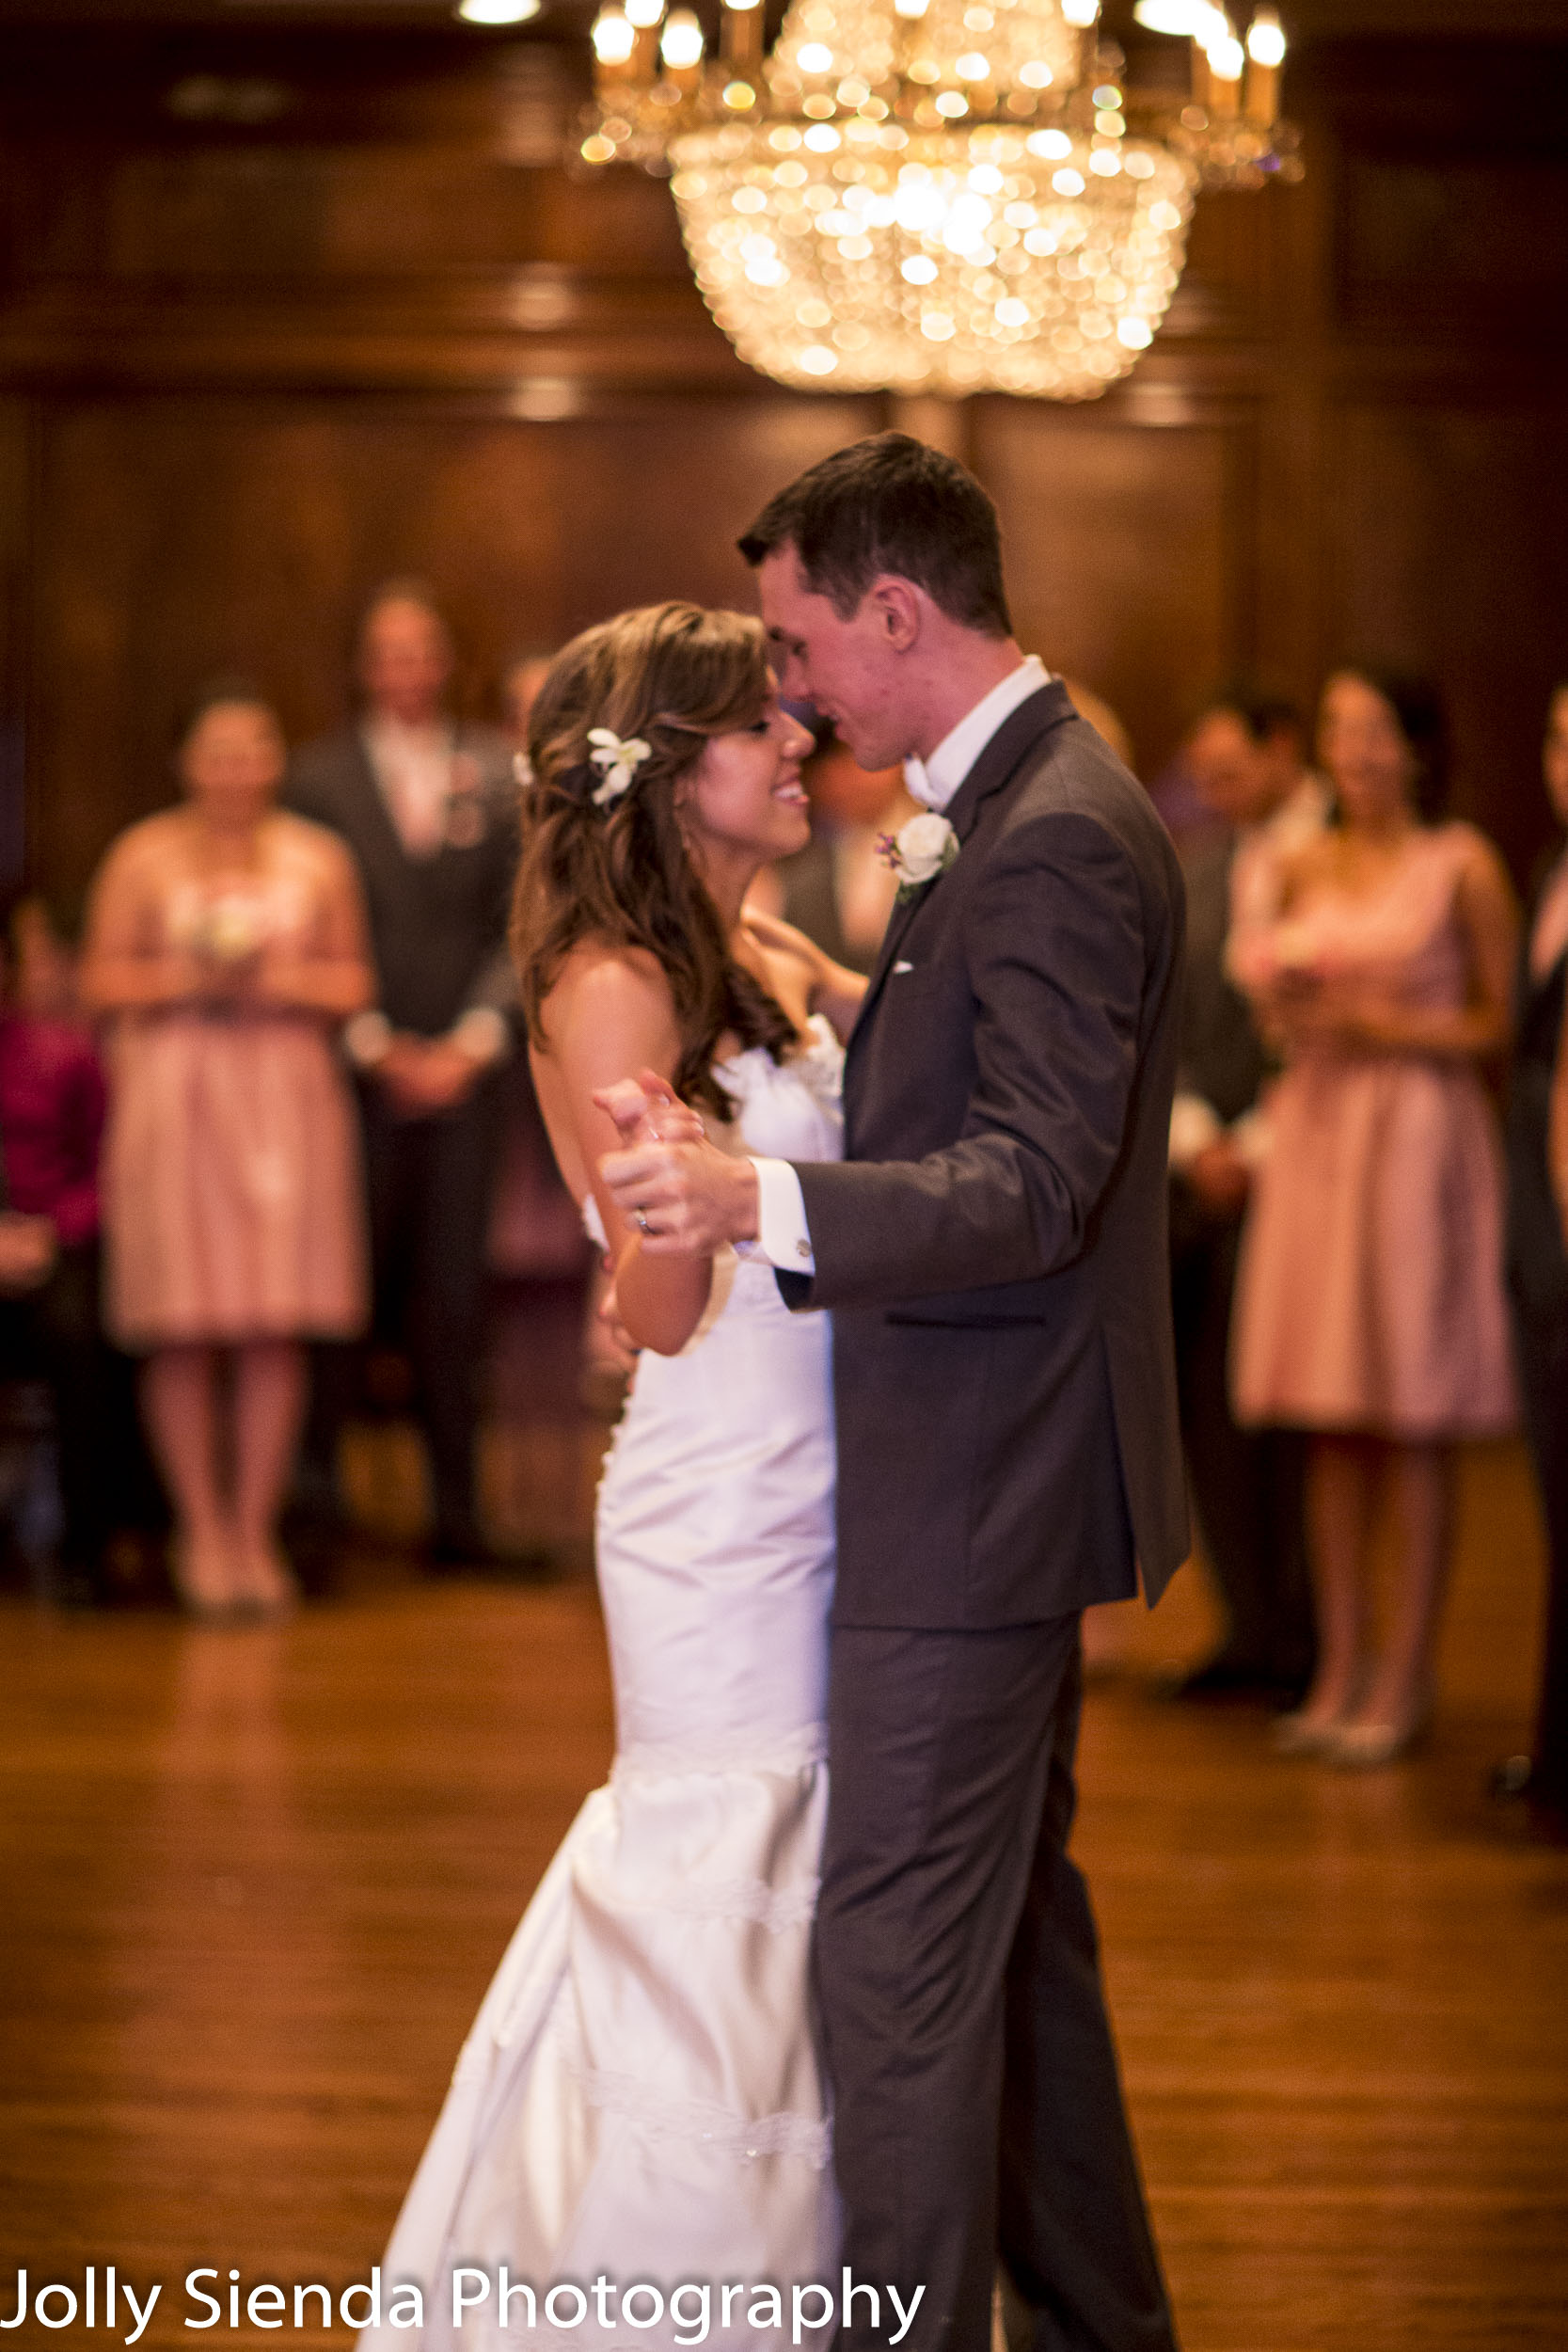 First dance kiss for the new married couple